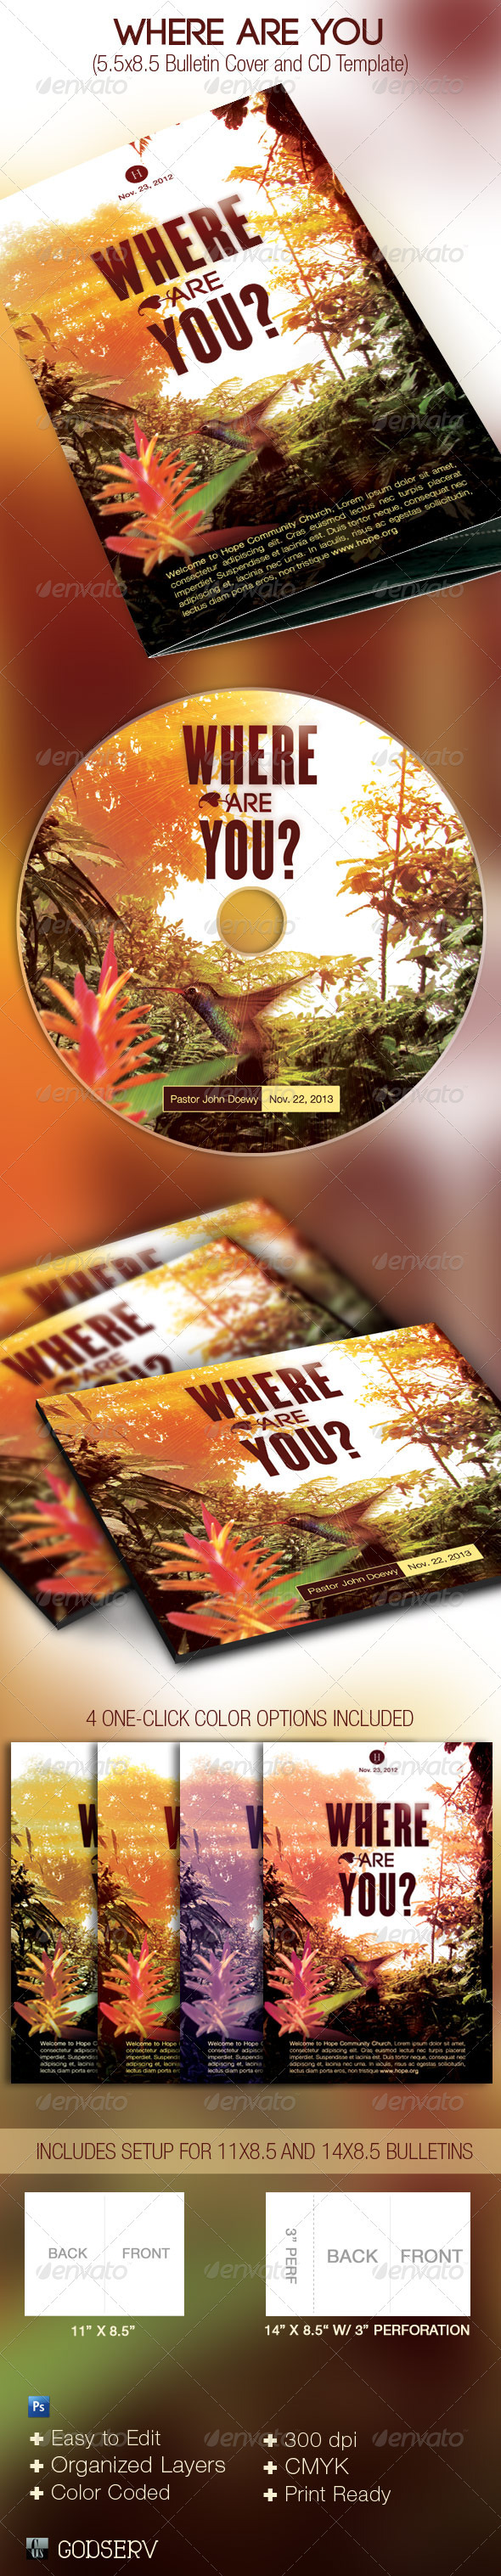 Where Are You Church Bulletin Cover CD Template - Miscellaneous Print Templates